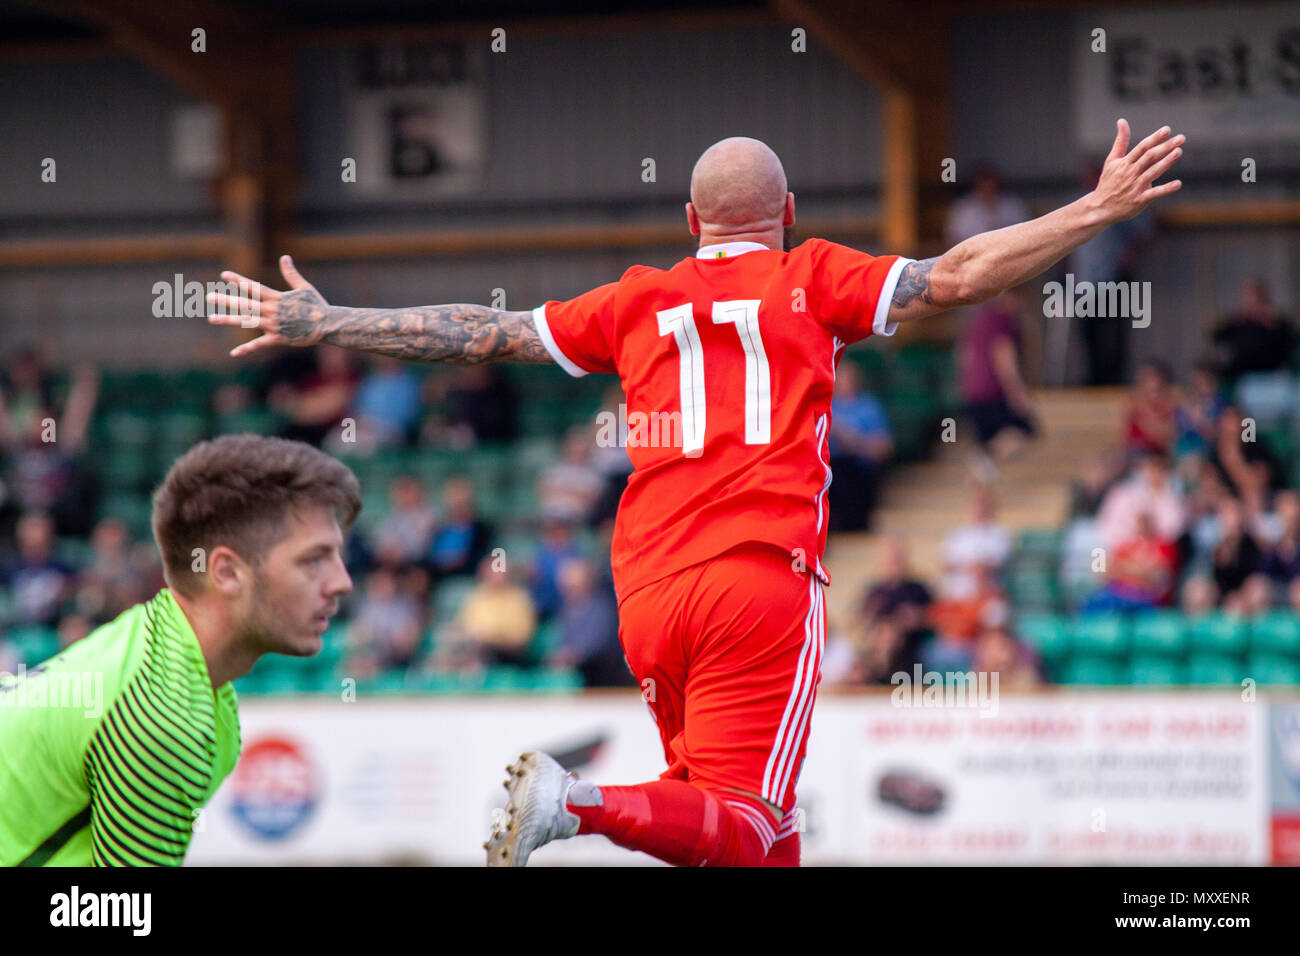 Chris Colvin-Owen of South Wales FA v Region of Gothenburg compete in the preliminary round of the UEFA Regions Cup at Jenner Park. - Stock Image